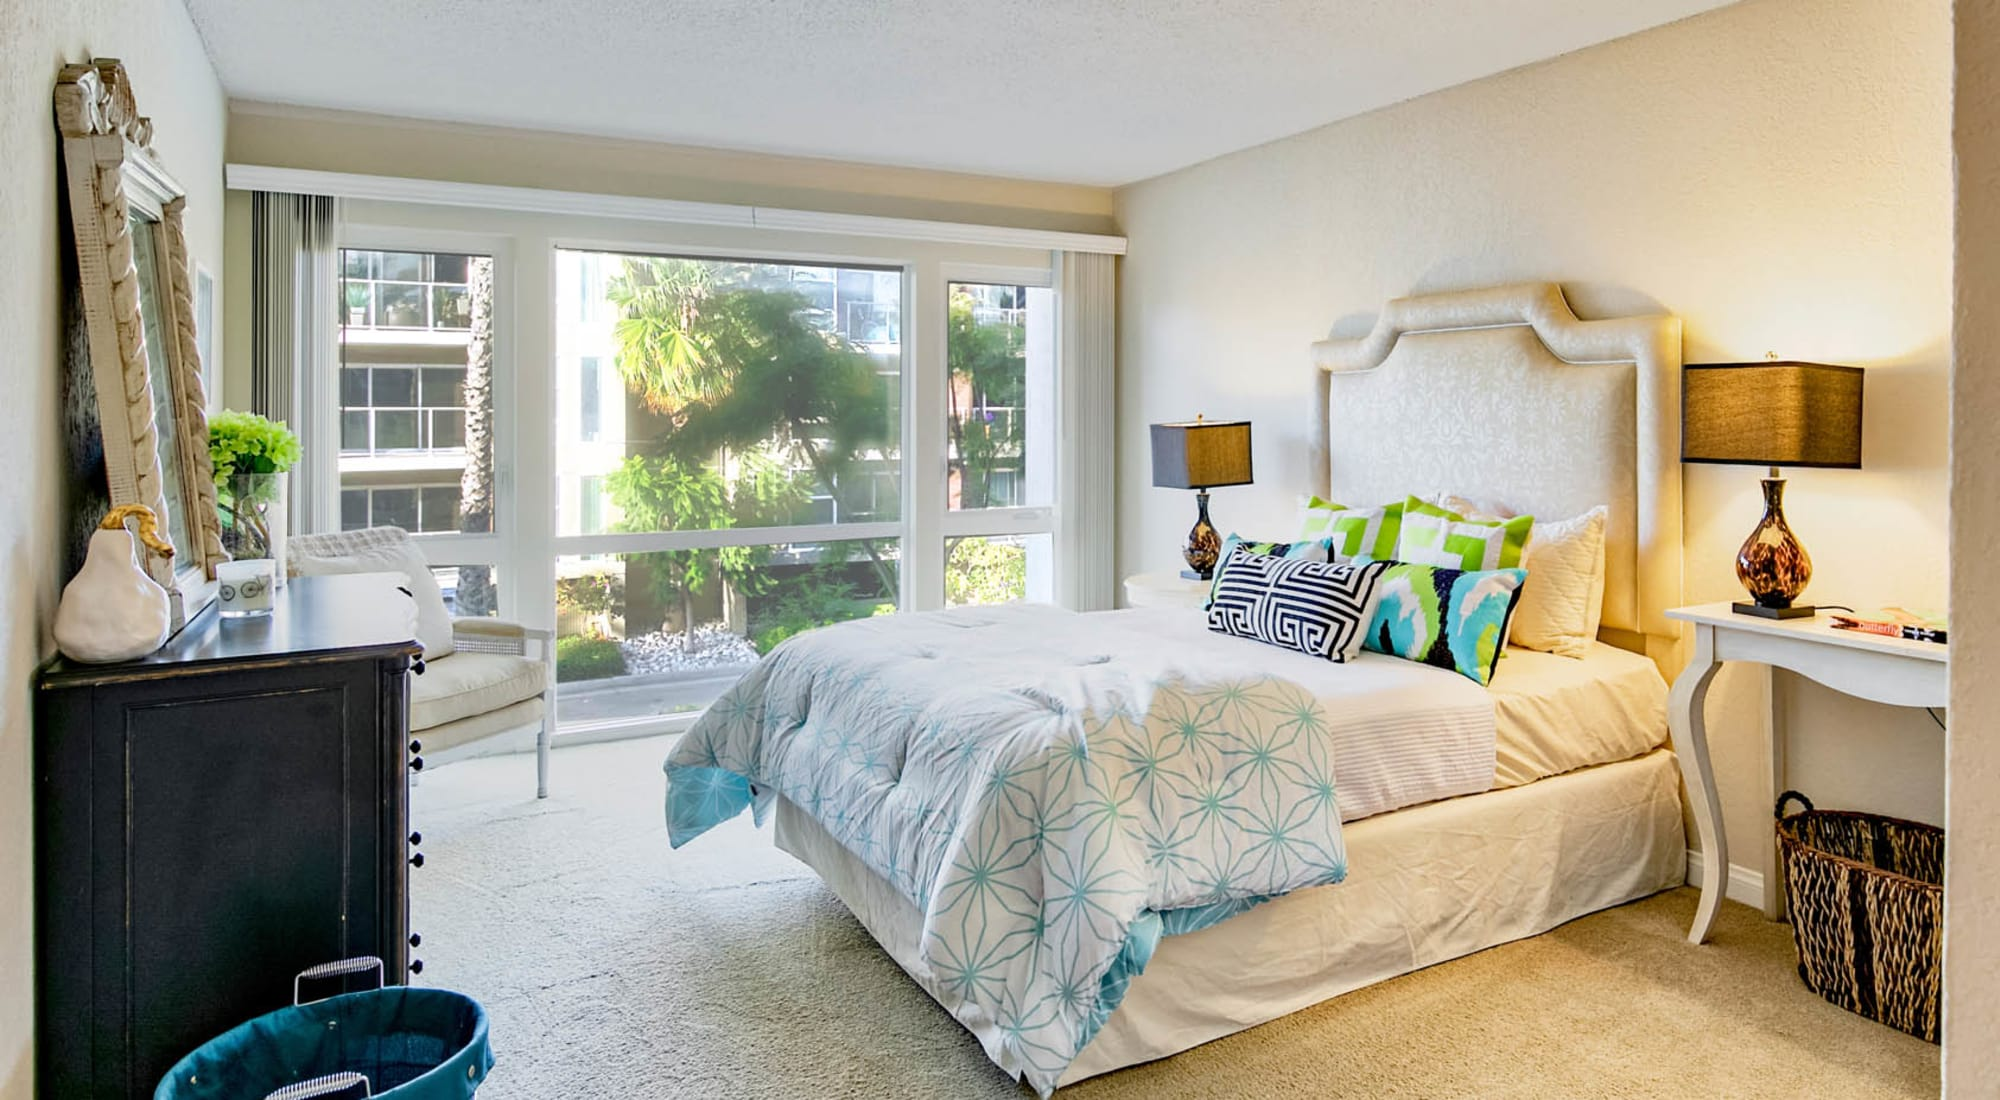 Model apartment's classically furnished primary bedroom with plush carpeting at The Tides at Marina Harbor in Marina Del Rey, California